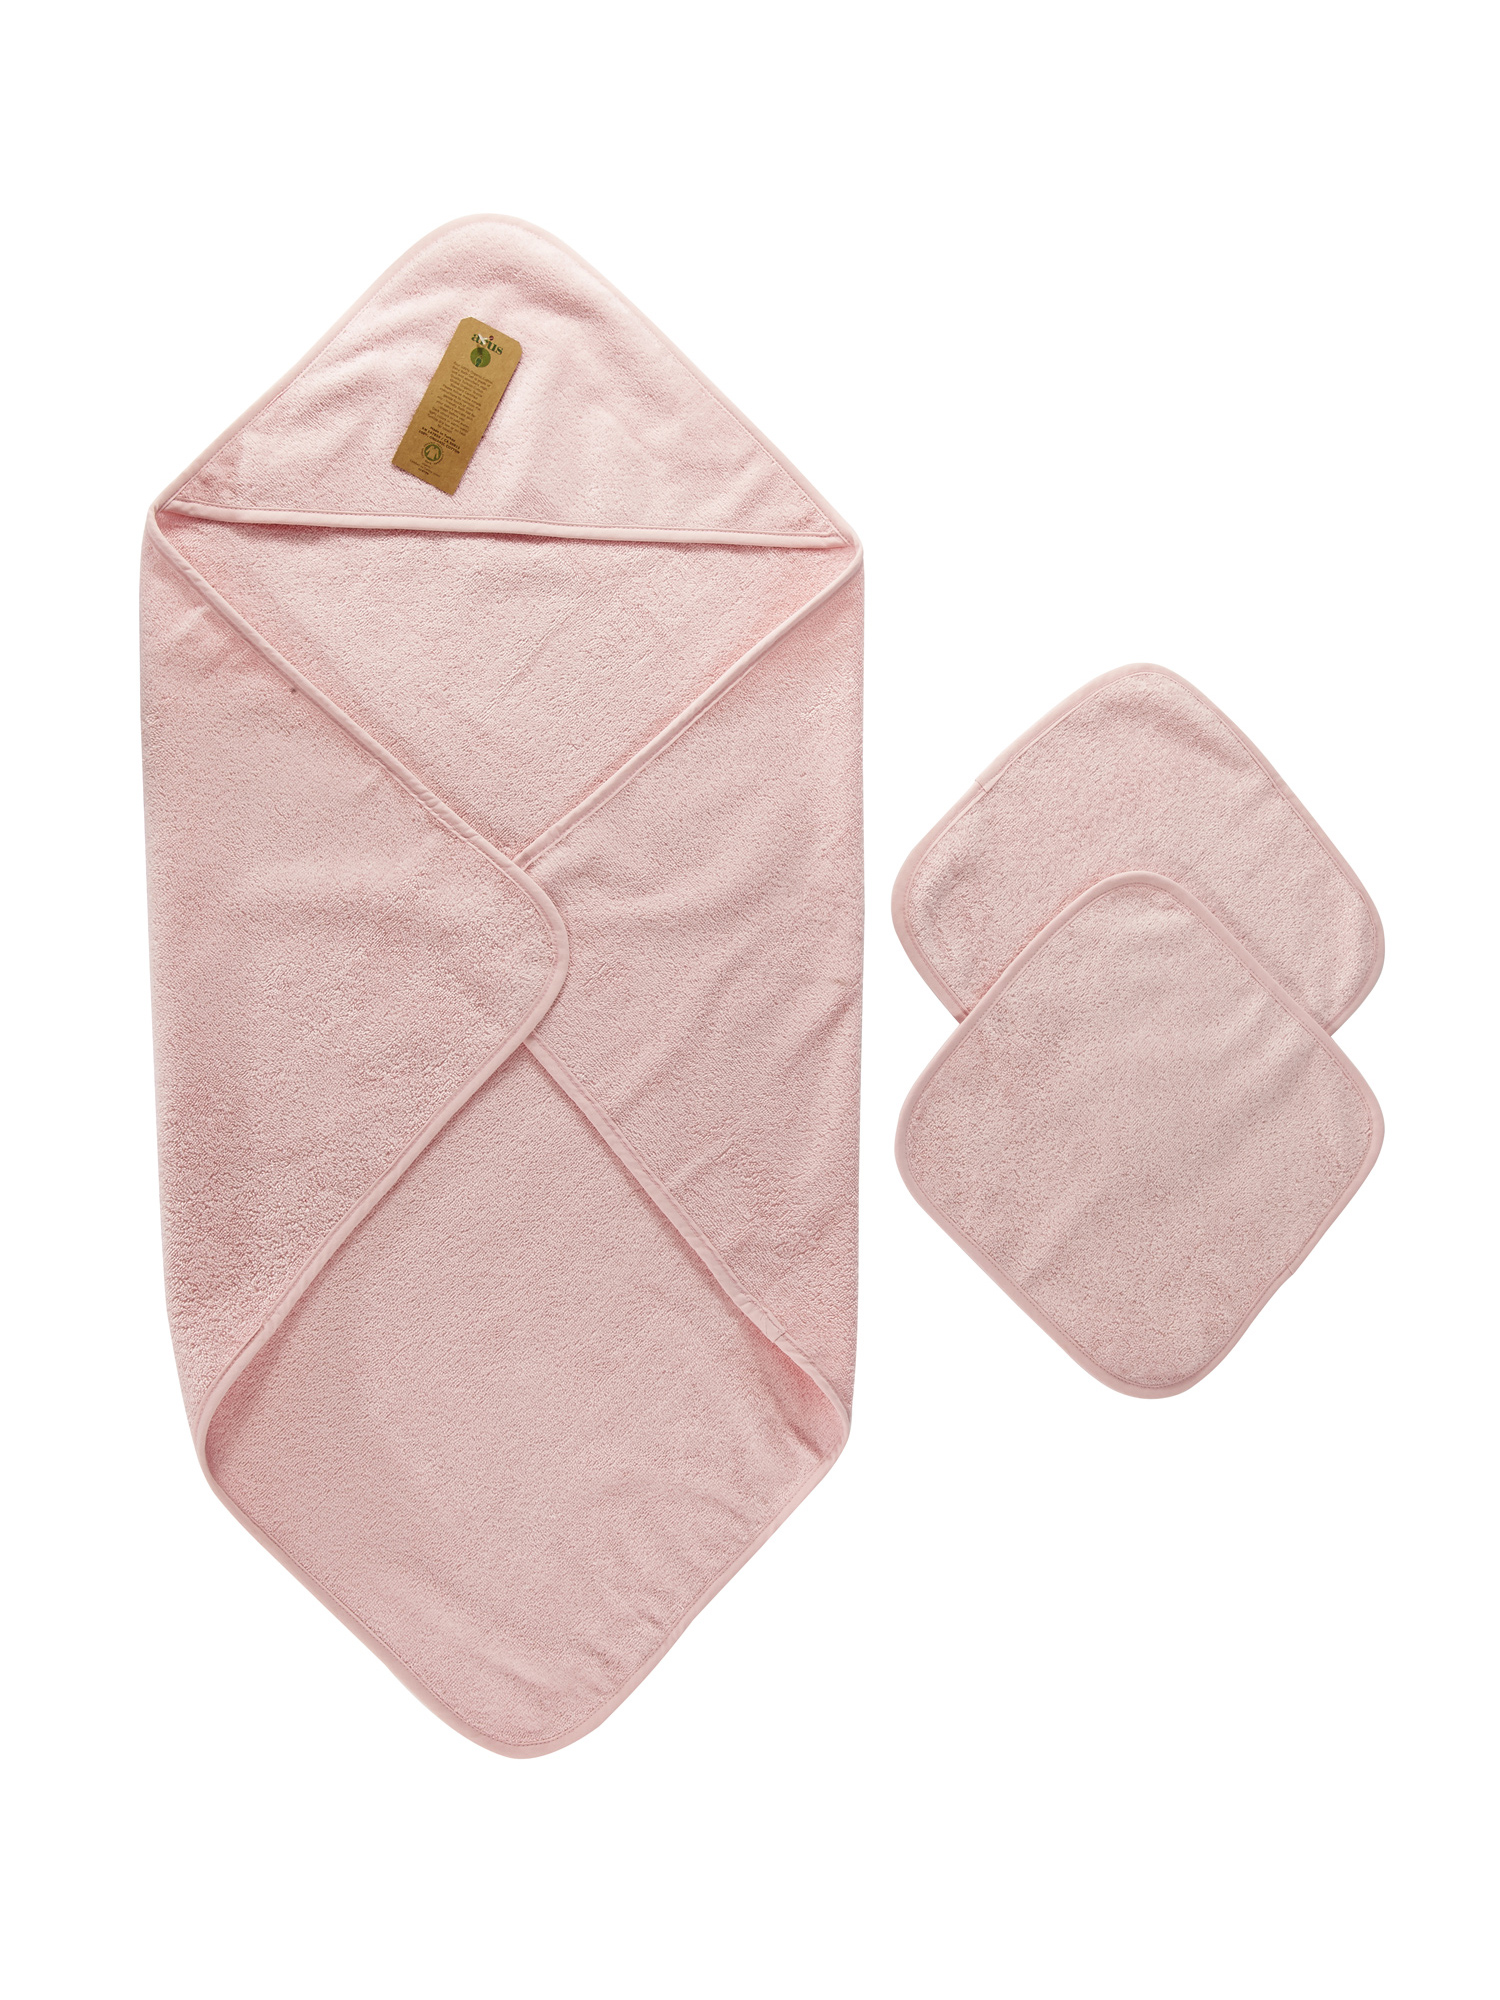 Baby Organic Turkish Cotton Hooded Towel and Washcloth Set by Panarus